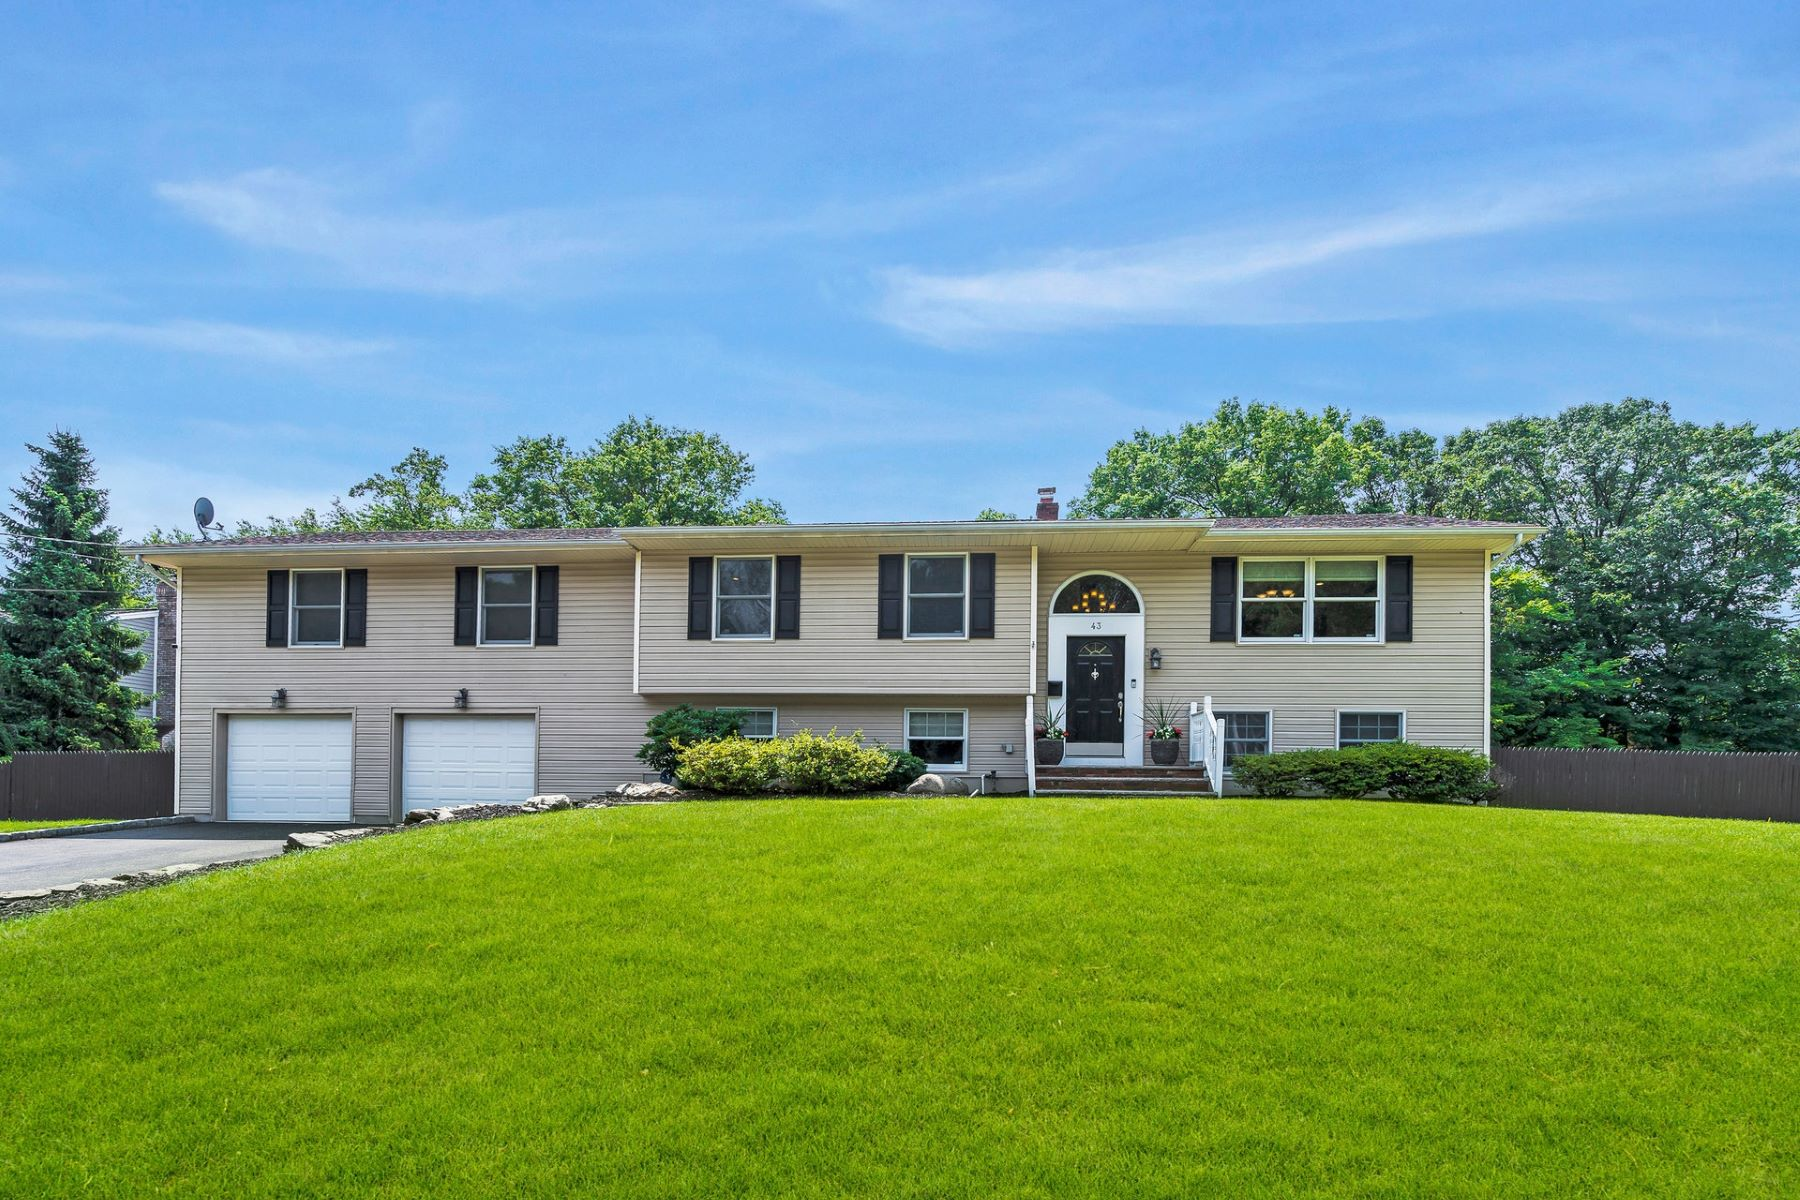 Single Family Homes for Sale at Beautiful Custom Home 43 Hamilton Street Allendale, New Jersey 07401 United States